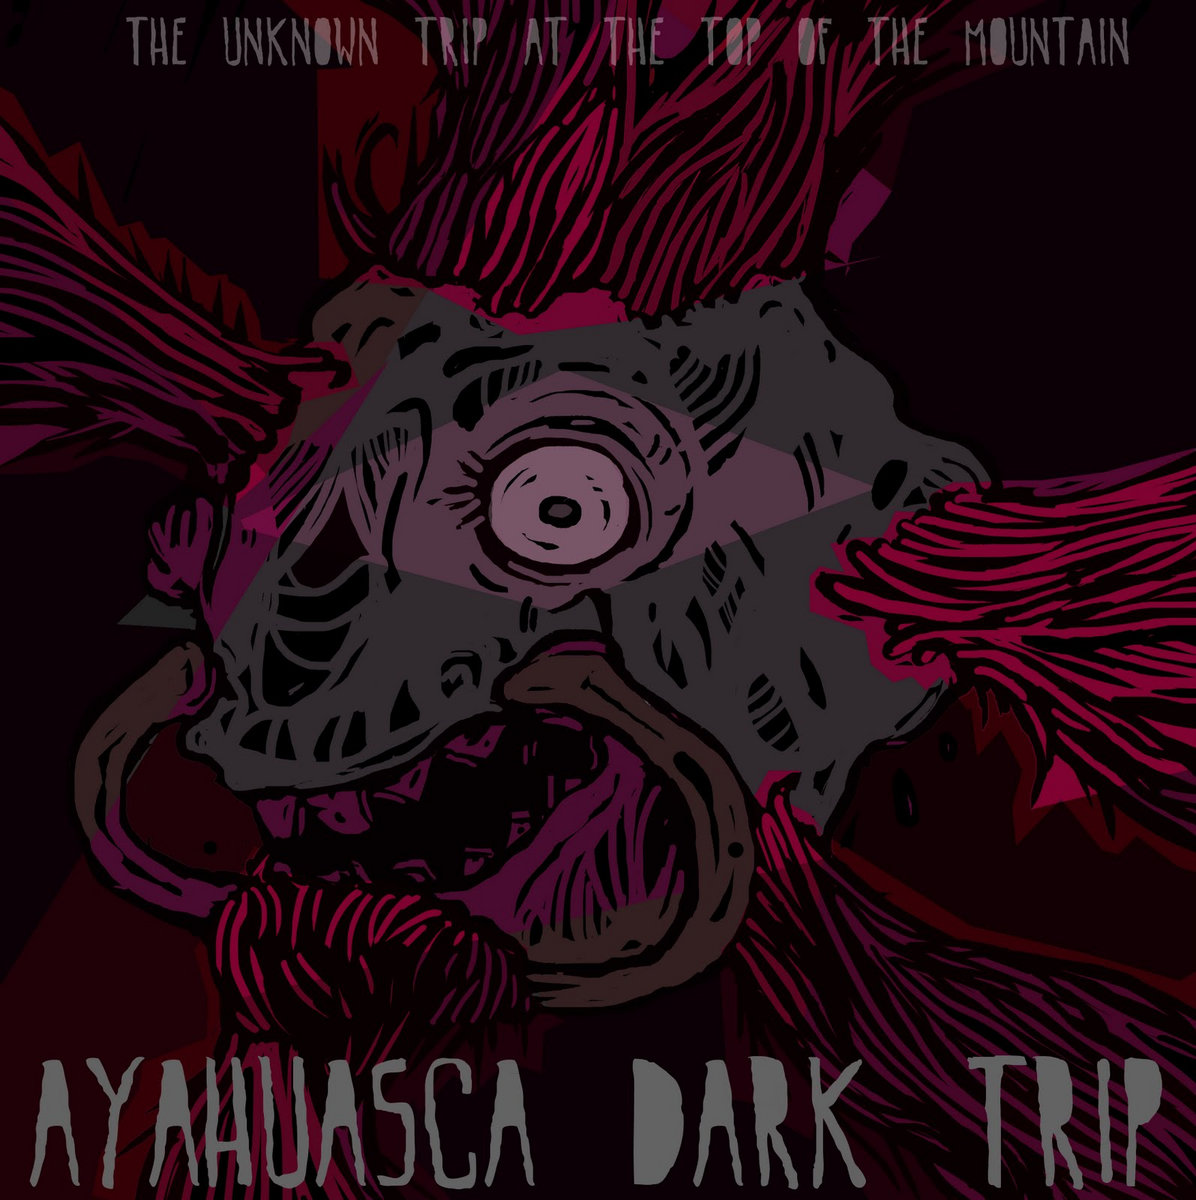 BR31 - Ayahuasca Dark Trip - The Unknown Trip At The Top Of